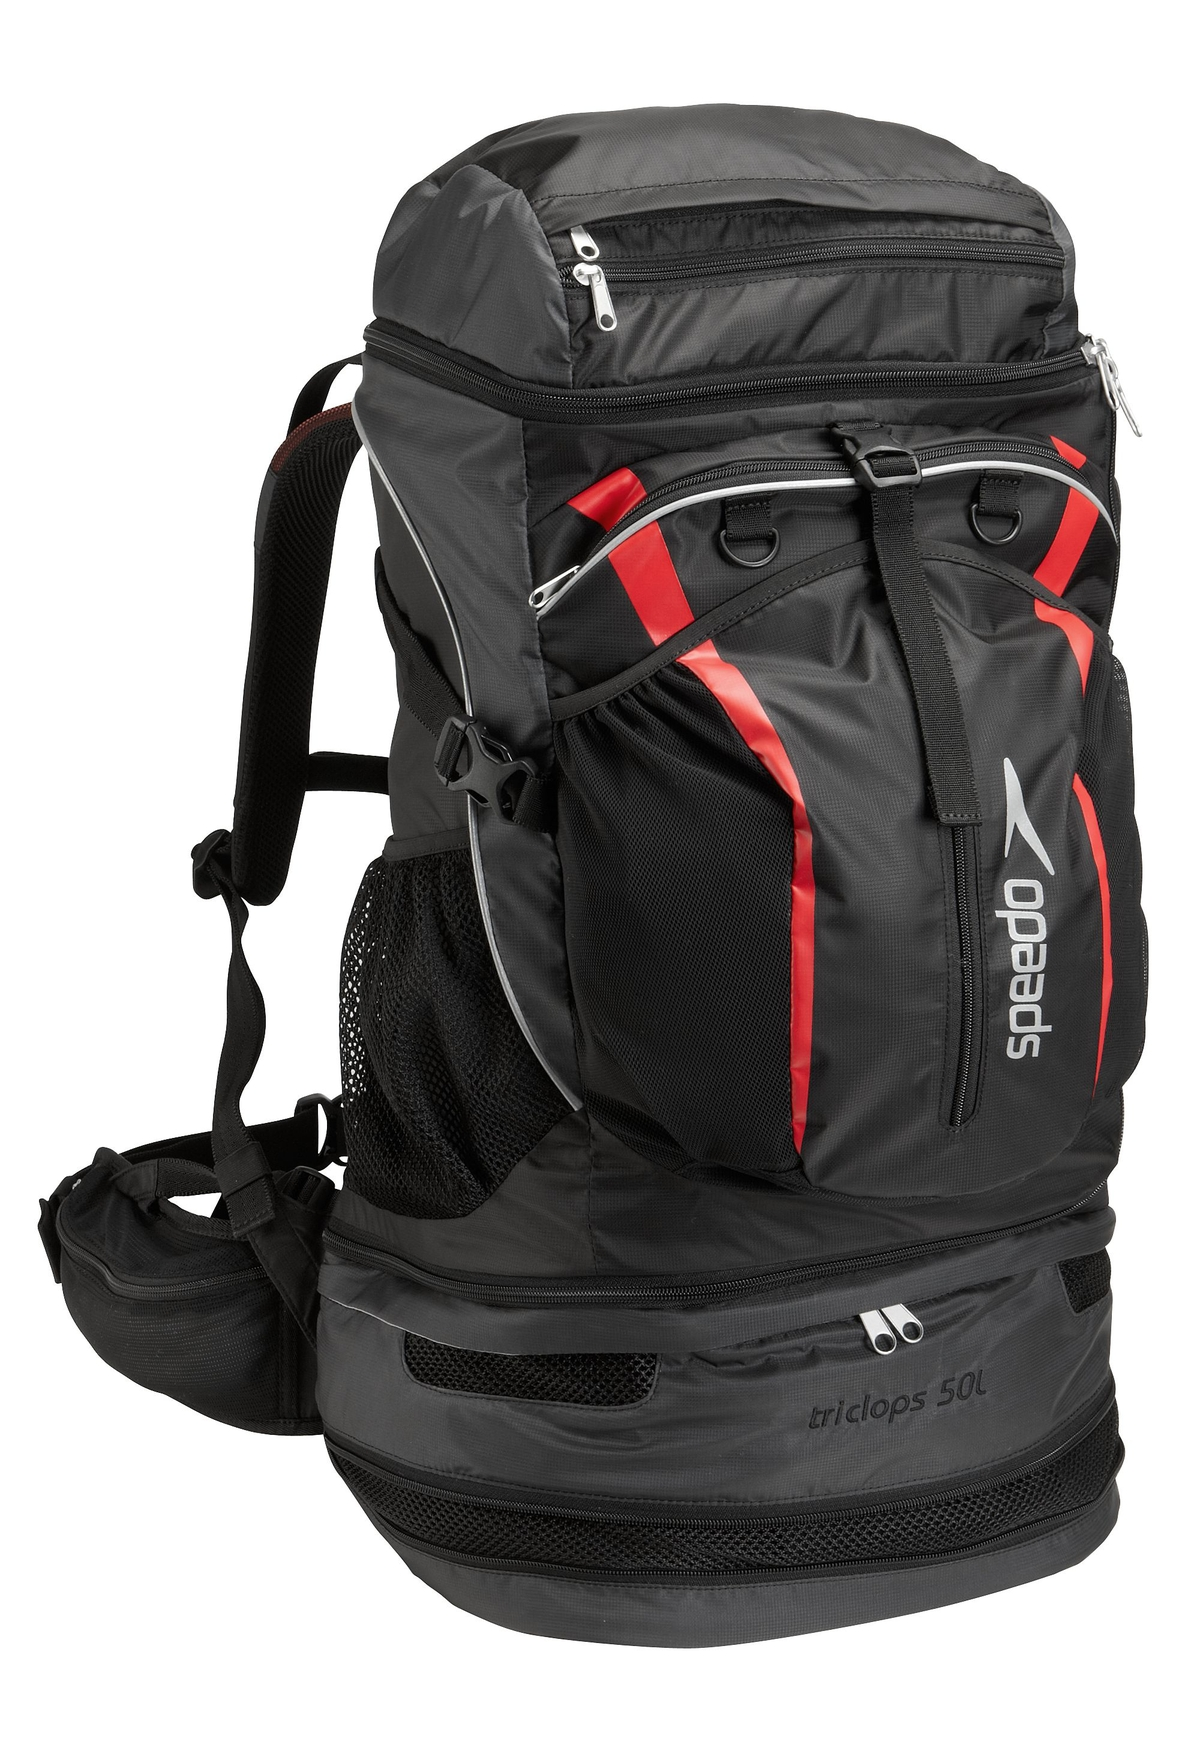 Tri Clops Backpack (50L)